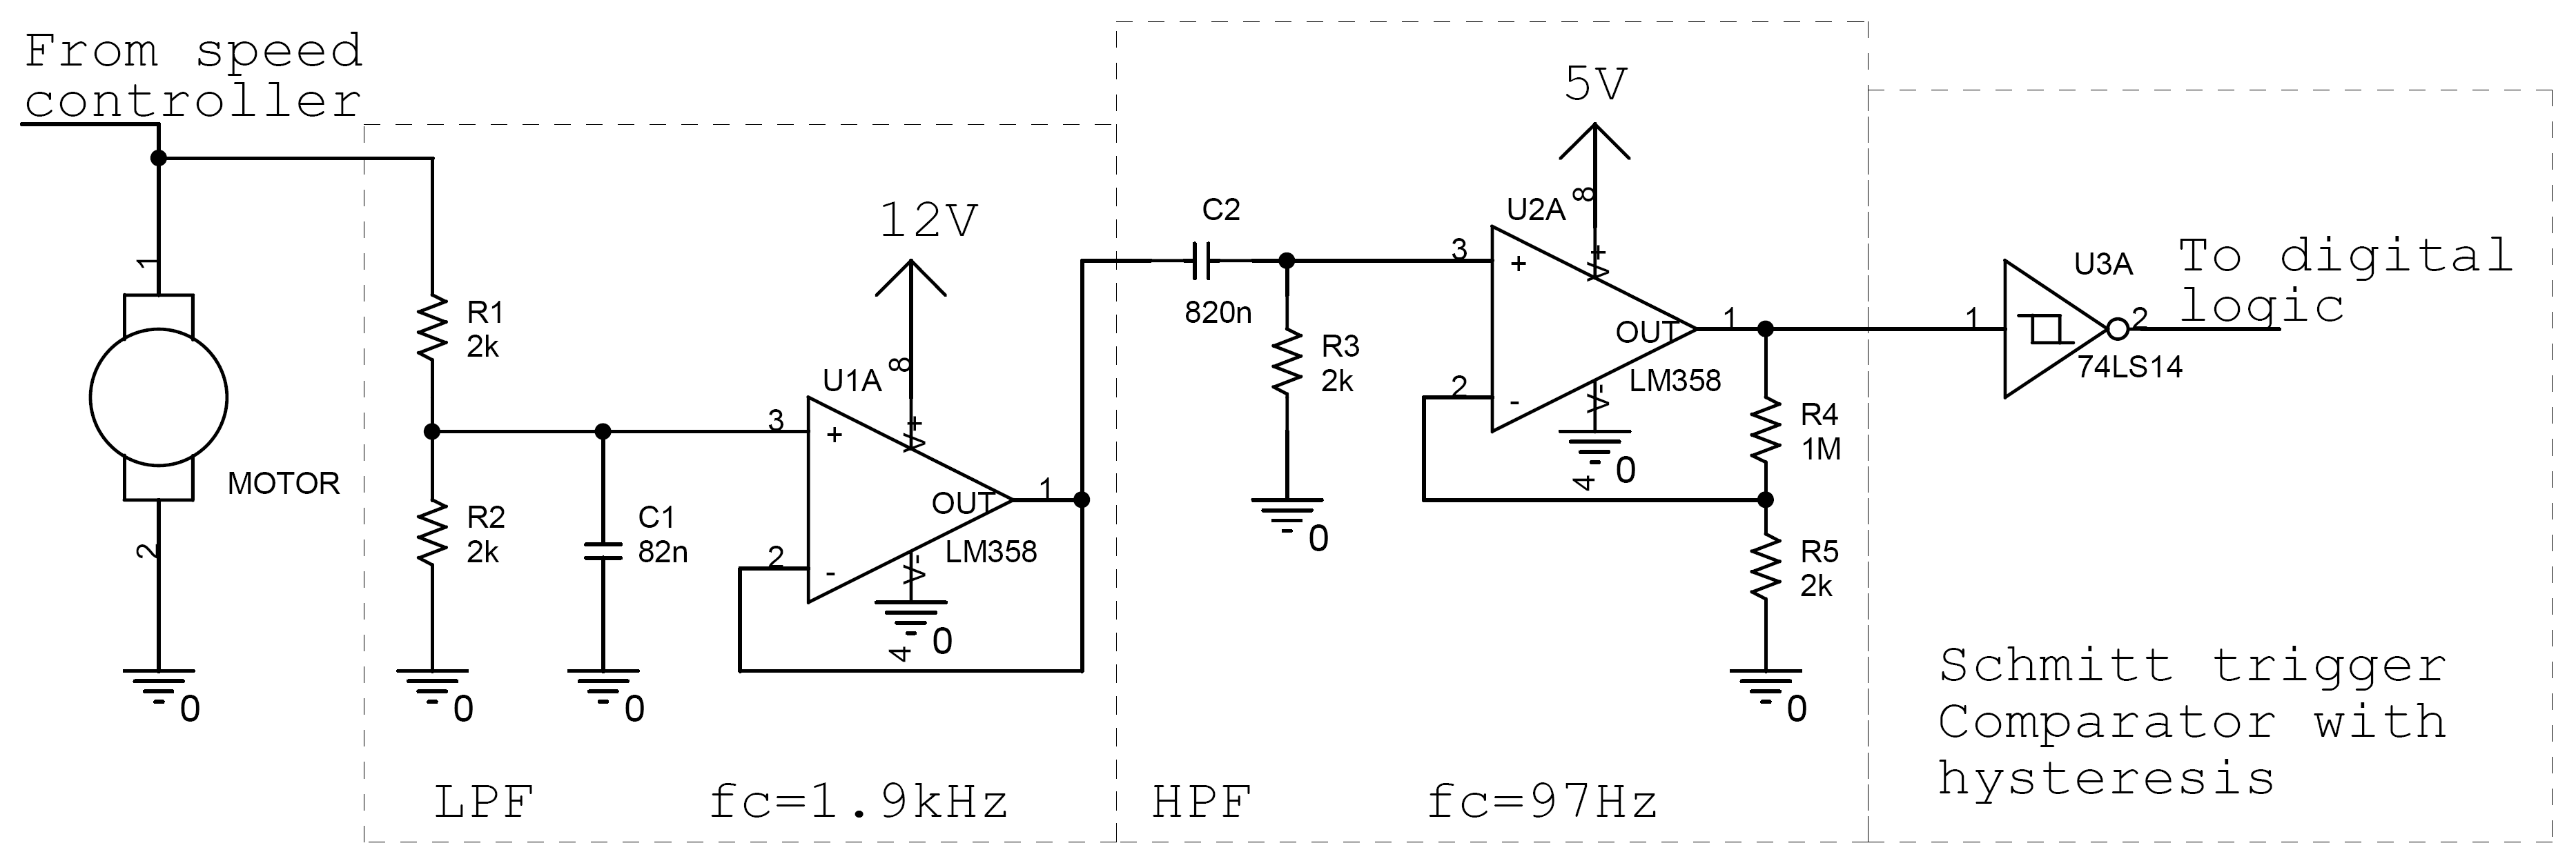 Yi Yao Dc Motor Controller And Tachometer Is The Bidirectional Circuit Which Allows Forward Reverse Speed Detector Schematic